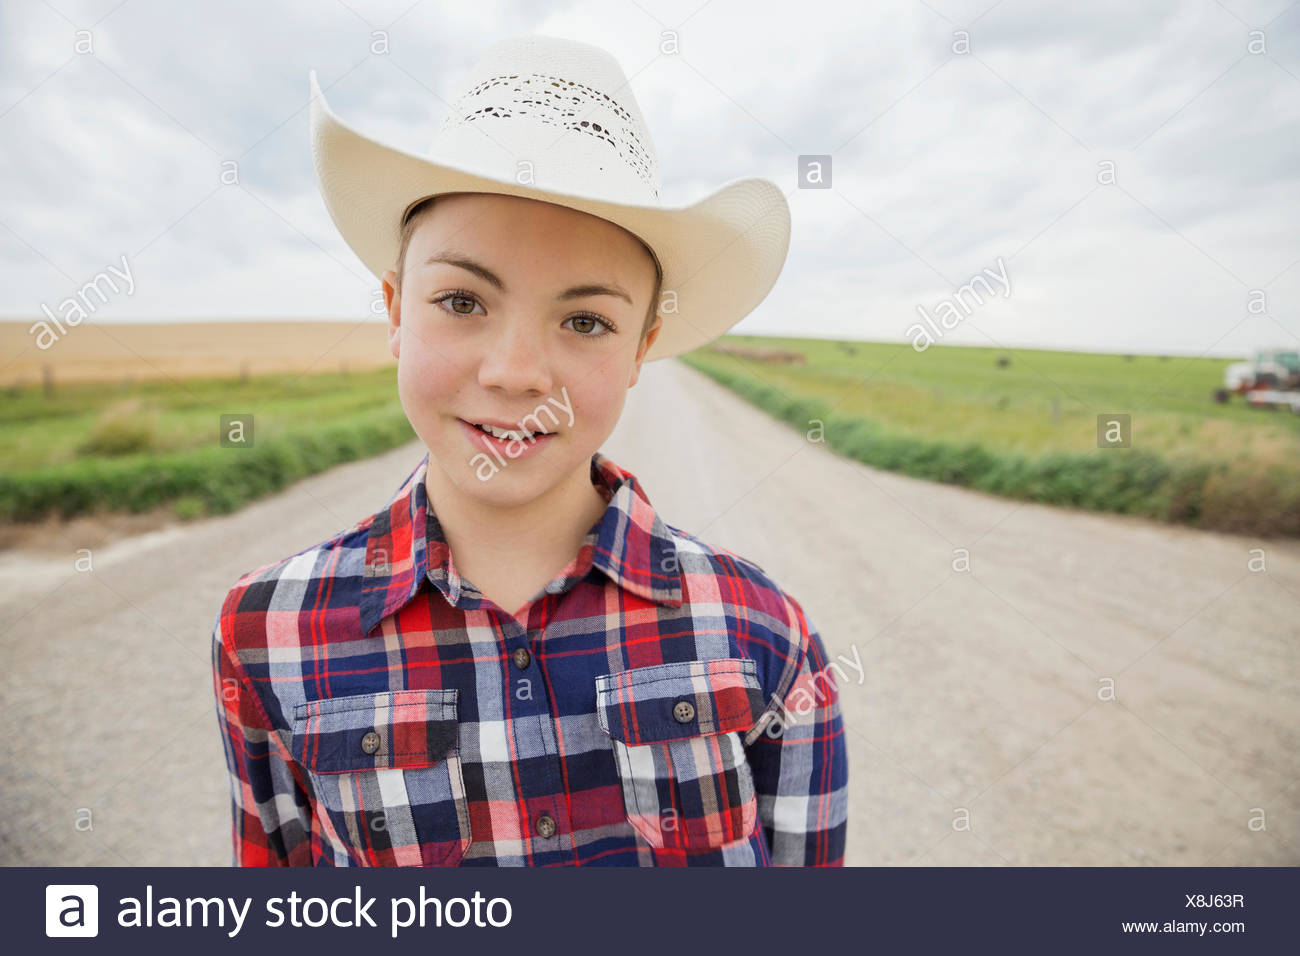 Portrait of boy in cowboy hat on road - Stock Image